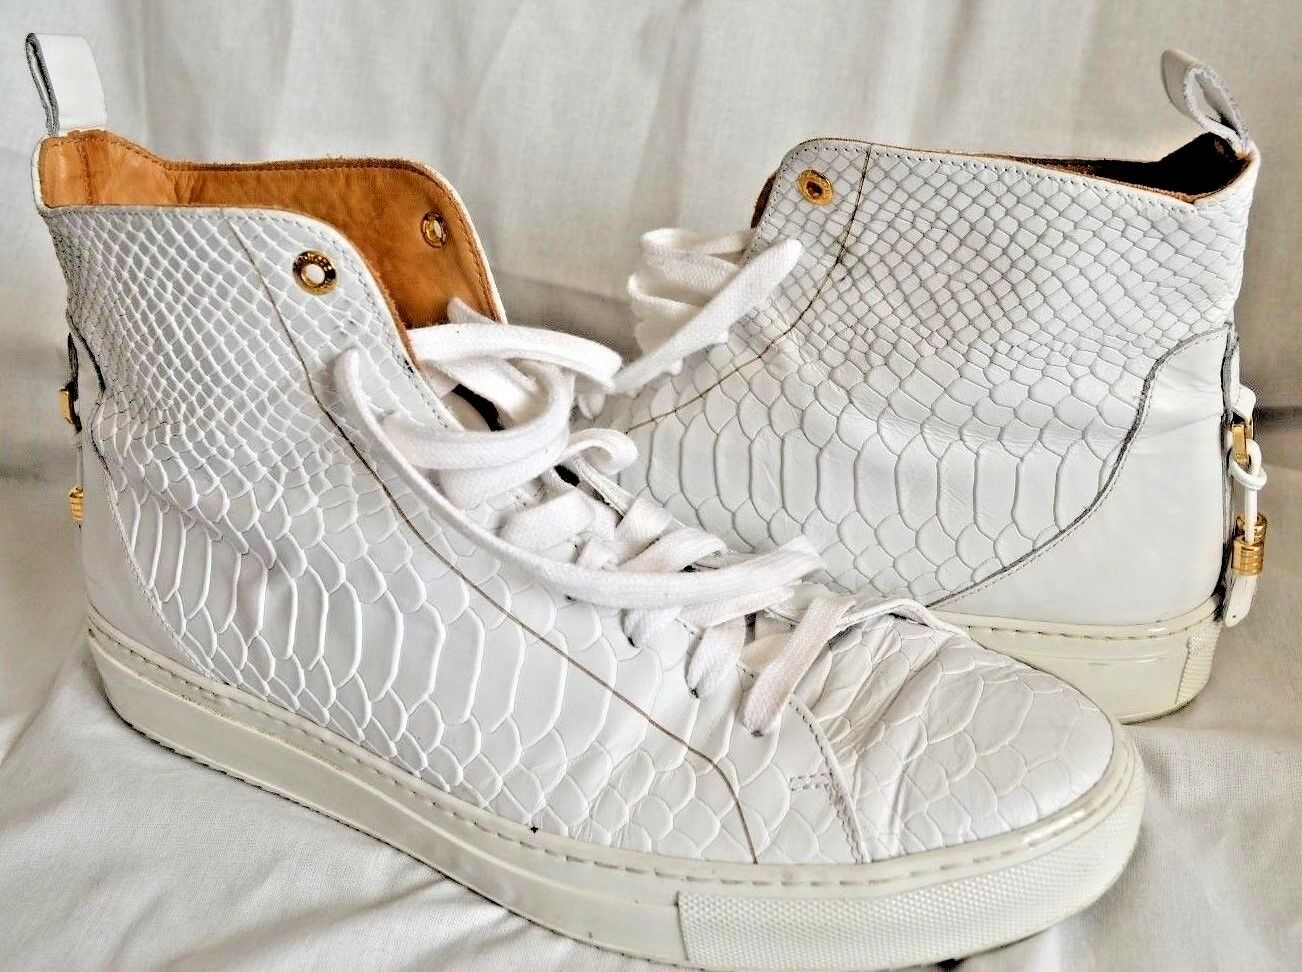 ANDROID ANDROID ANDROID HOMME Designer Handmade Weiß Reptile Print Leather Trainers UK 9 EU 43 a91edd